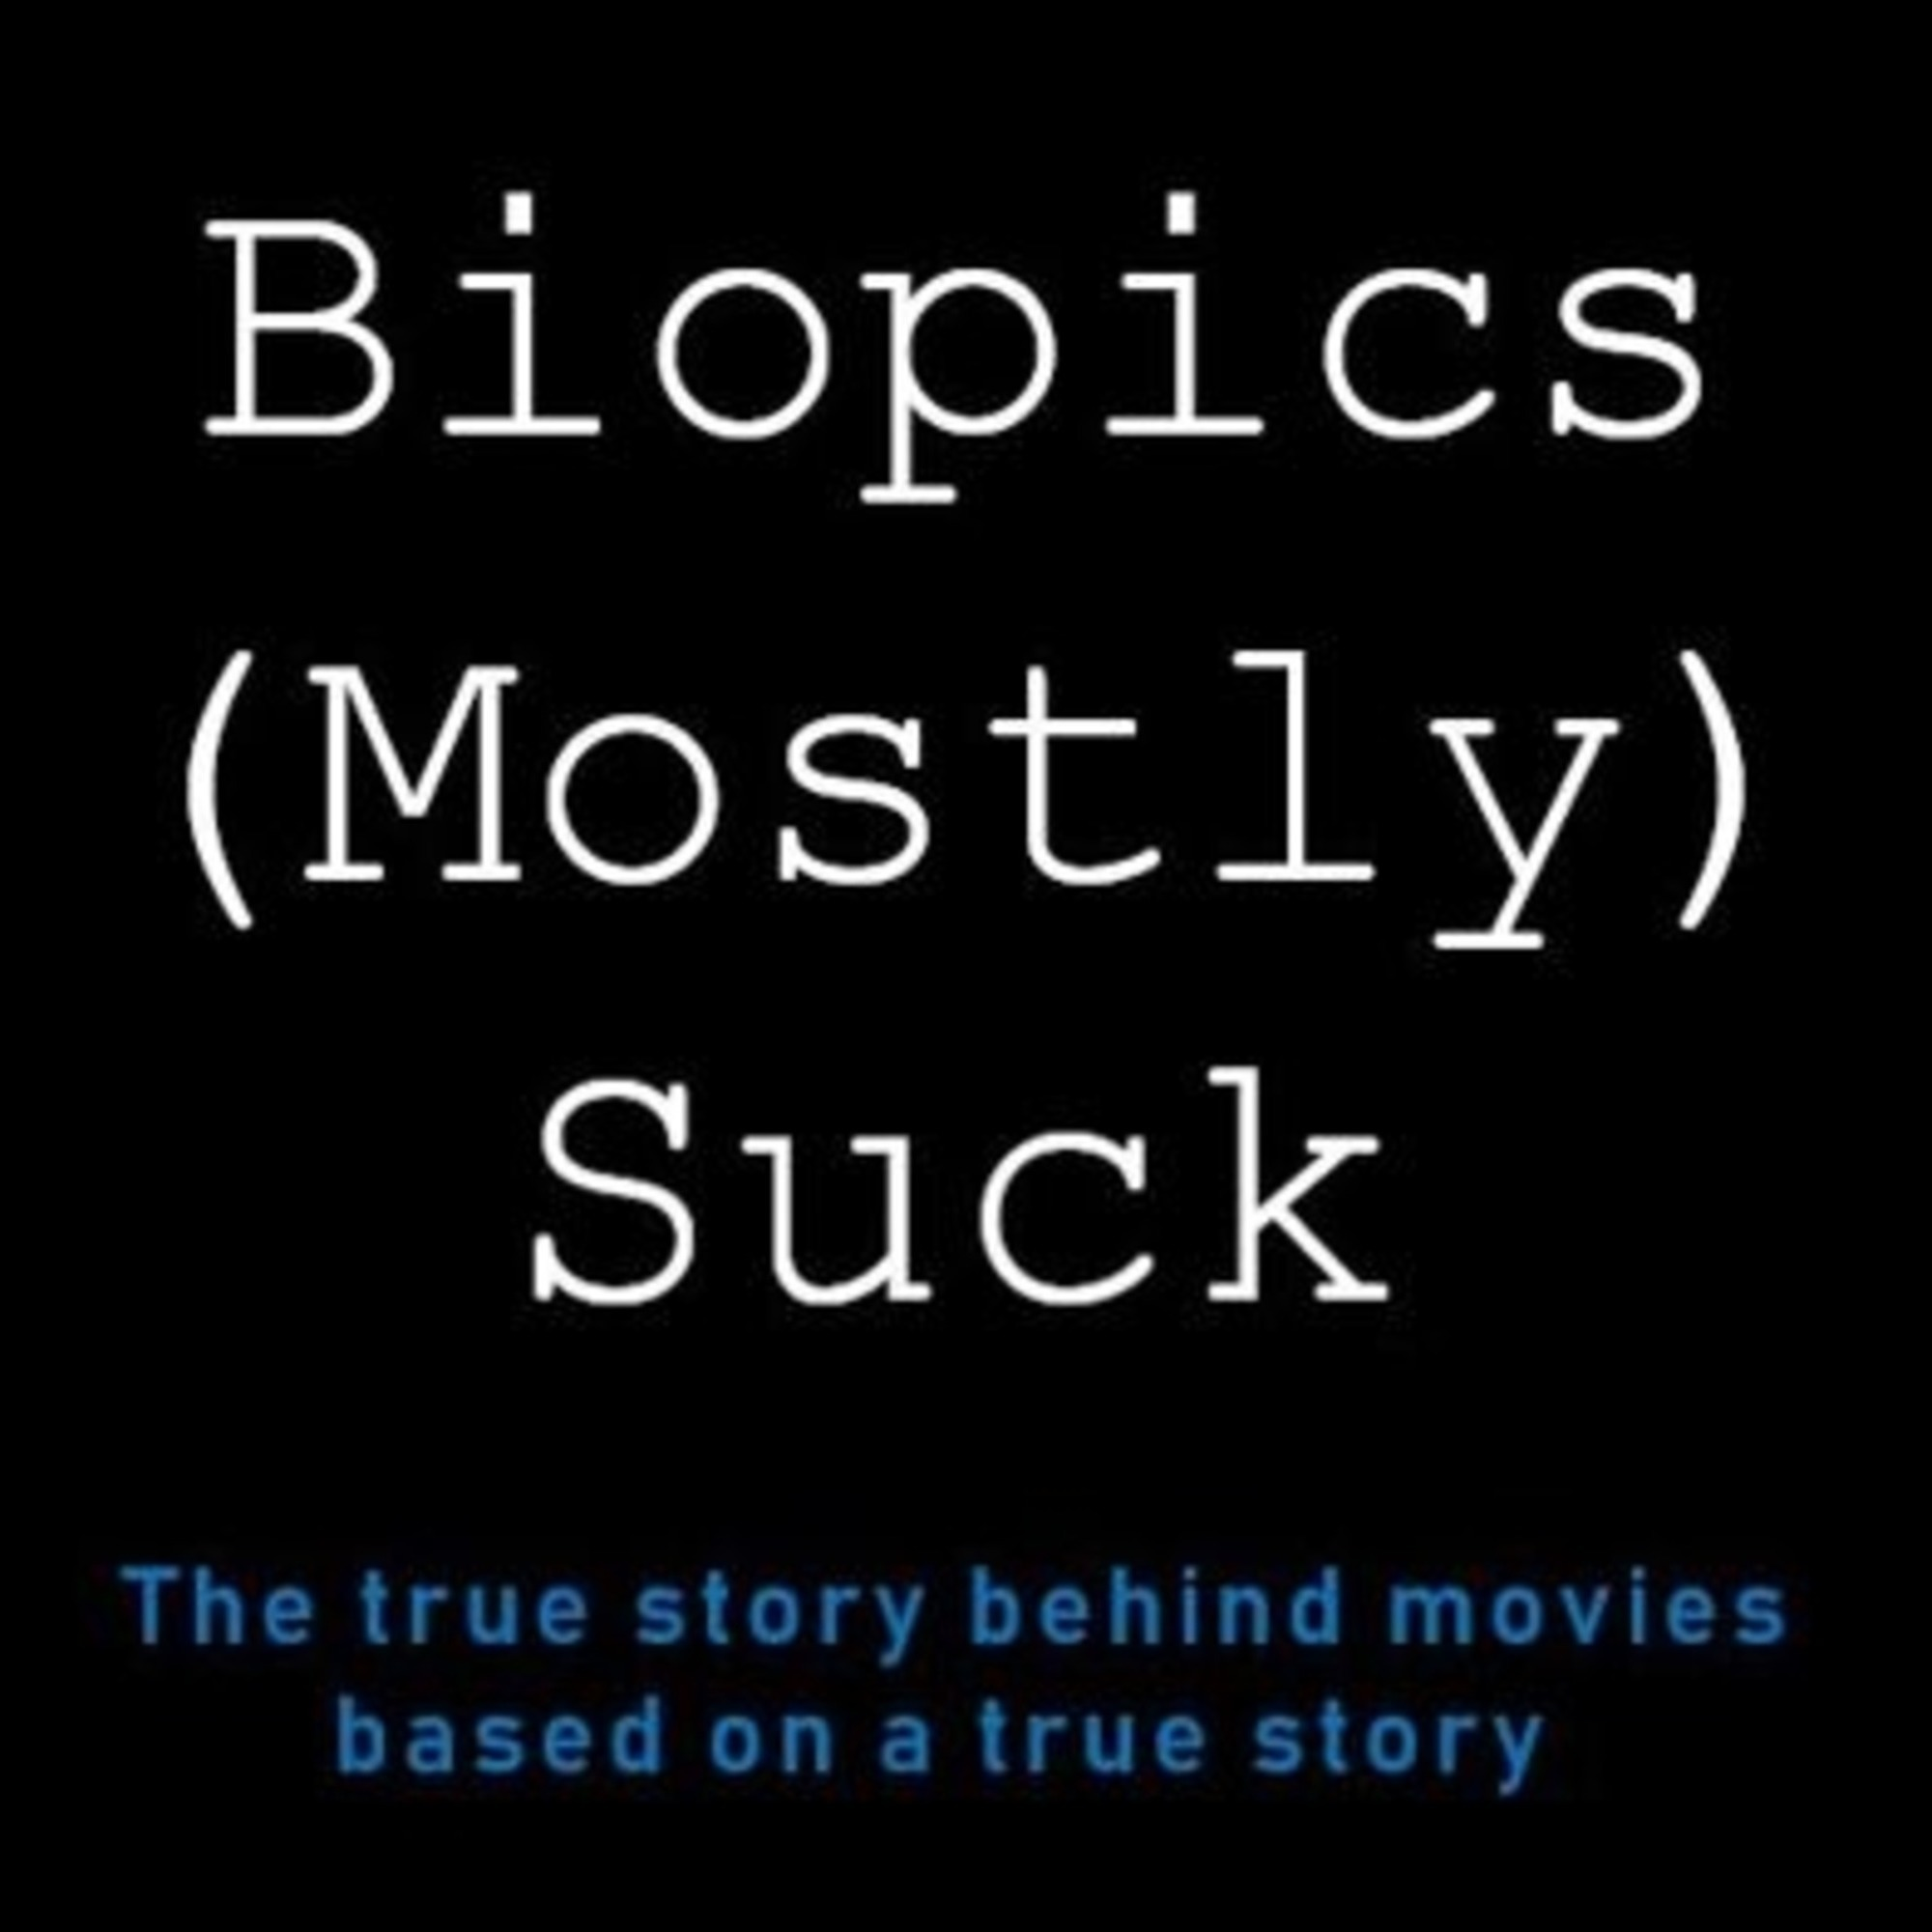 Biopics (Mostly) Suck - I Should Have Hit Record